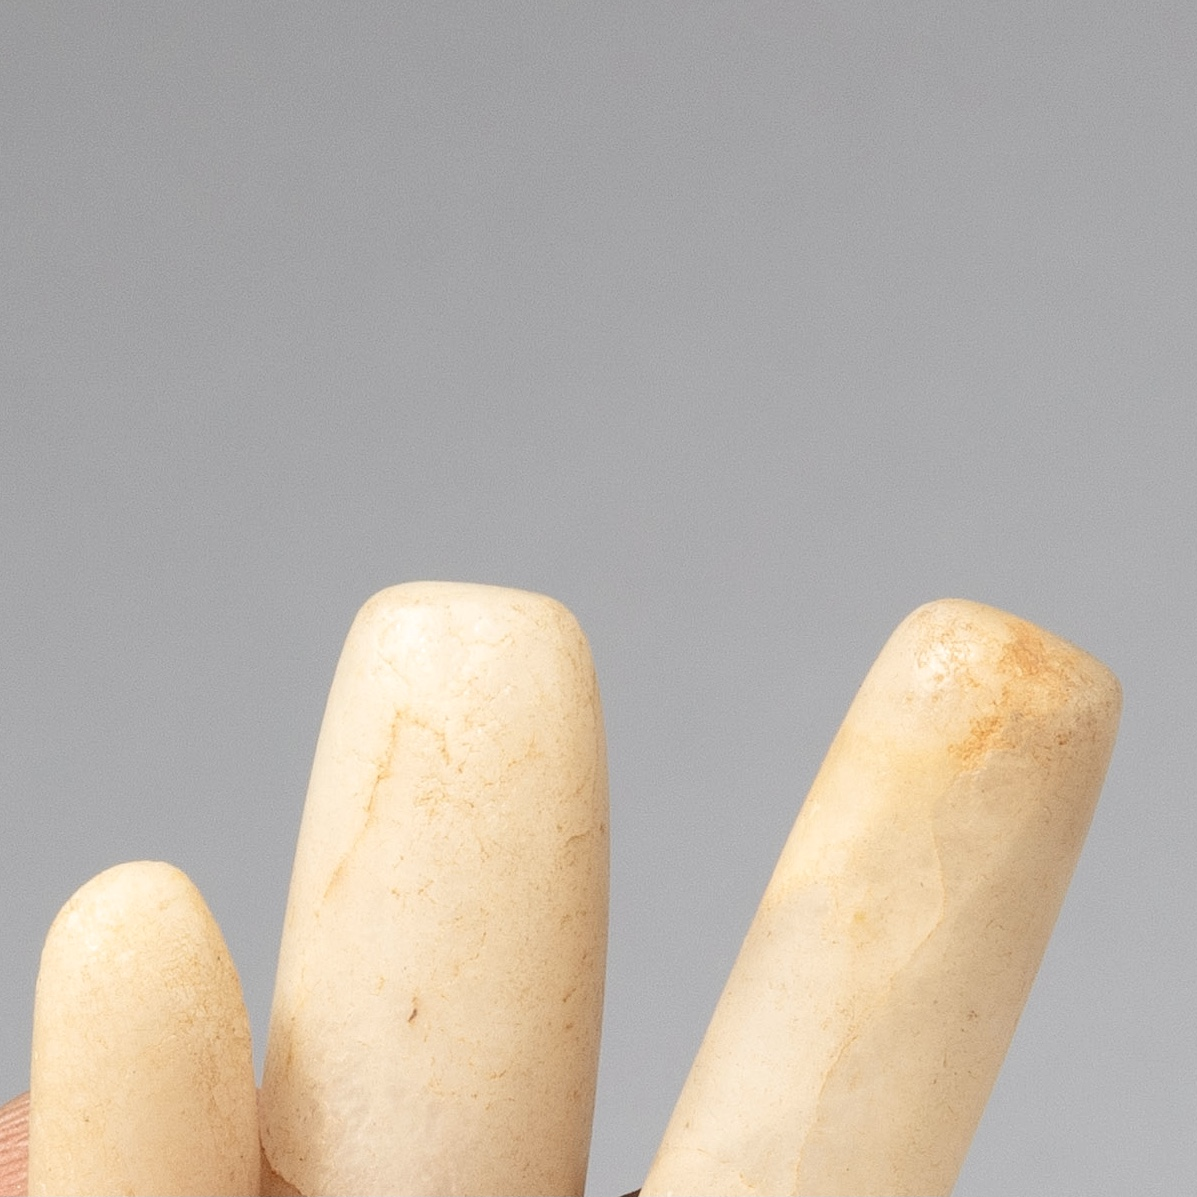 4 BEAUTIFUL QUARTZ, ANCIENT STONE LIP PLUGS FROM THE DESERT OF NIGER, W. AFRICA ( No 4288)